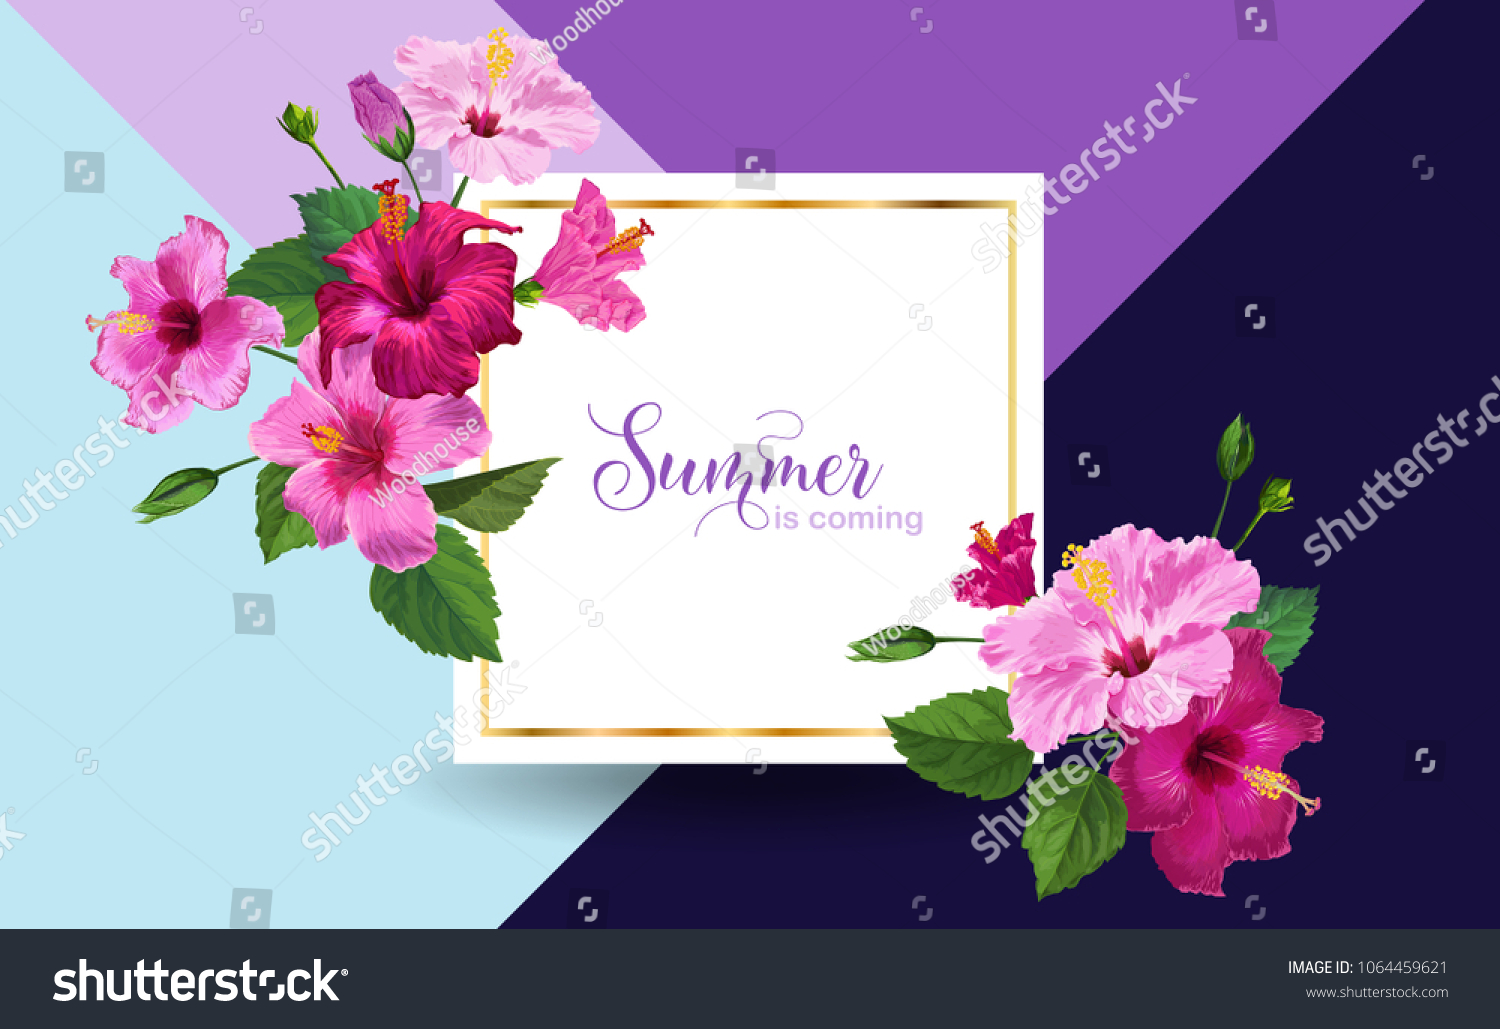 Hello summer poster floral design pink stock vector royalty free floral design with pink hibiscus flowers for party invitation banner izmirmasajfo